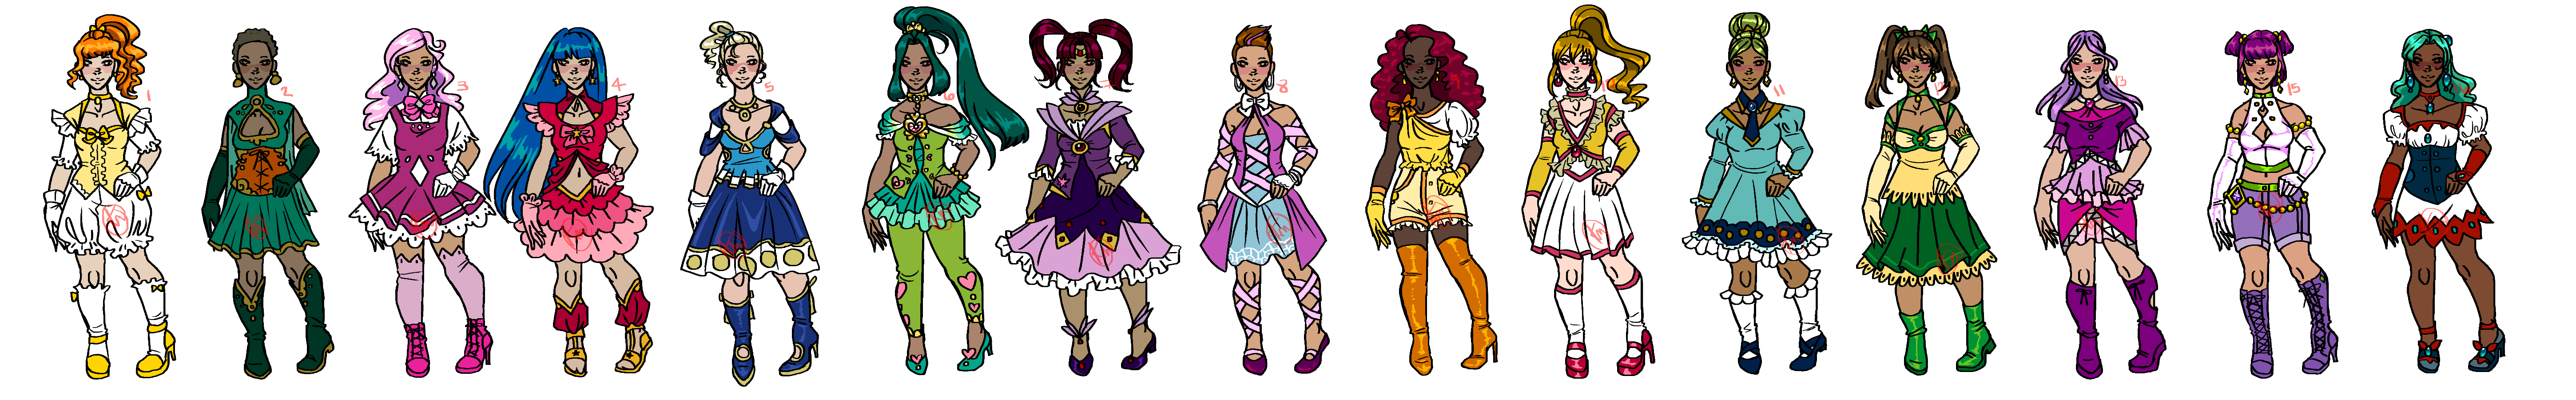 Magical Girl Outfit Designs By KiniBee On DeviantArt